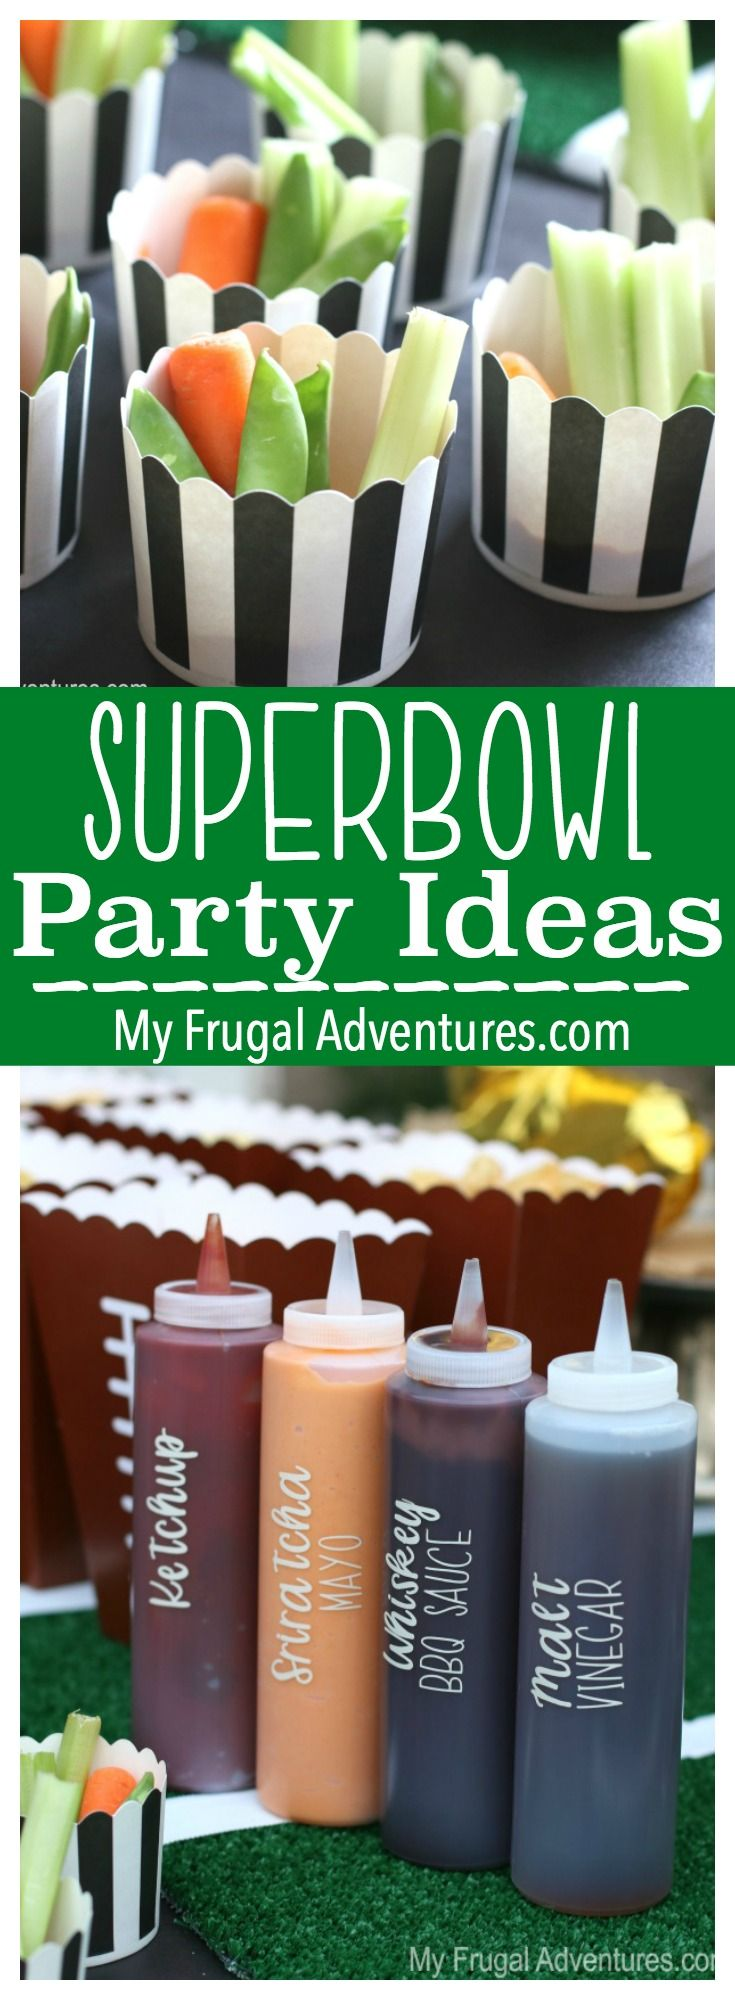 Fun and simple ideas for tailgating, football parties or Superbowl. #WorldMarketTribe #ad